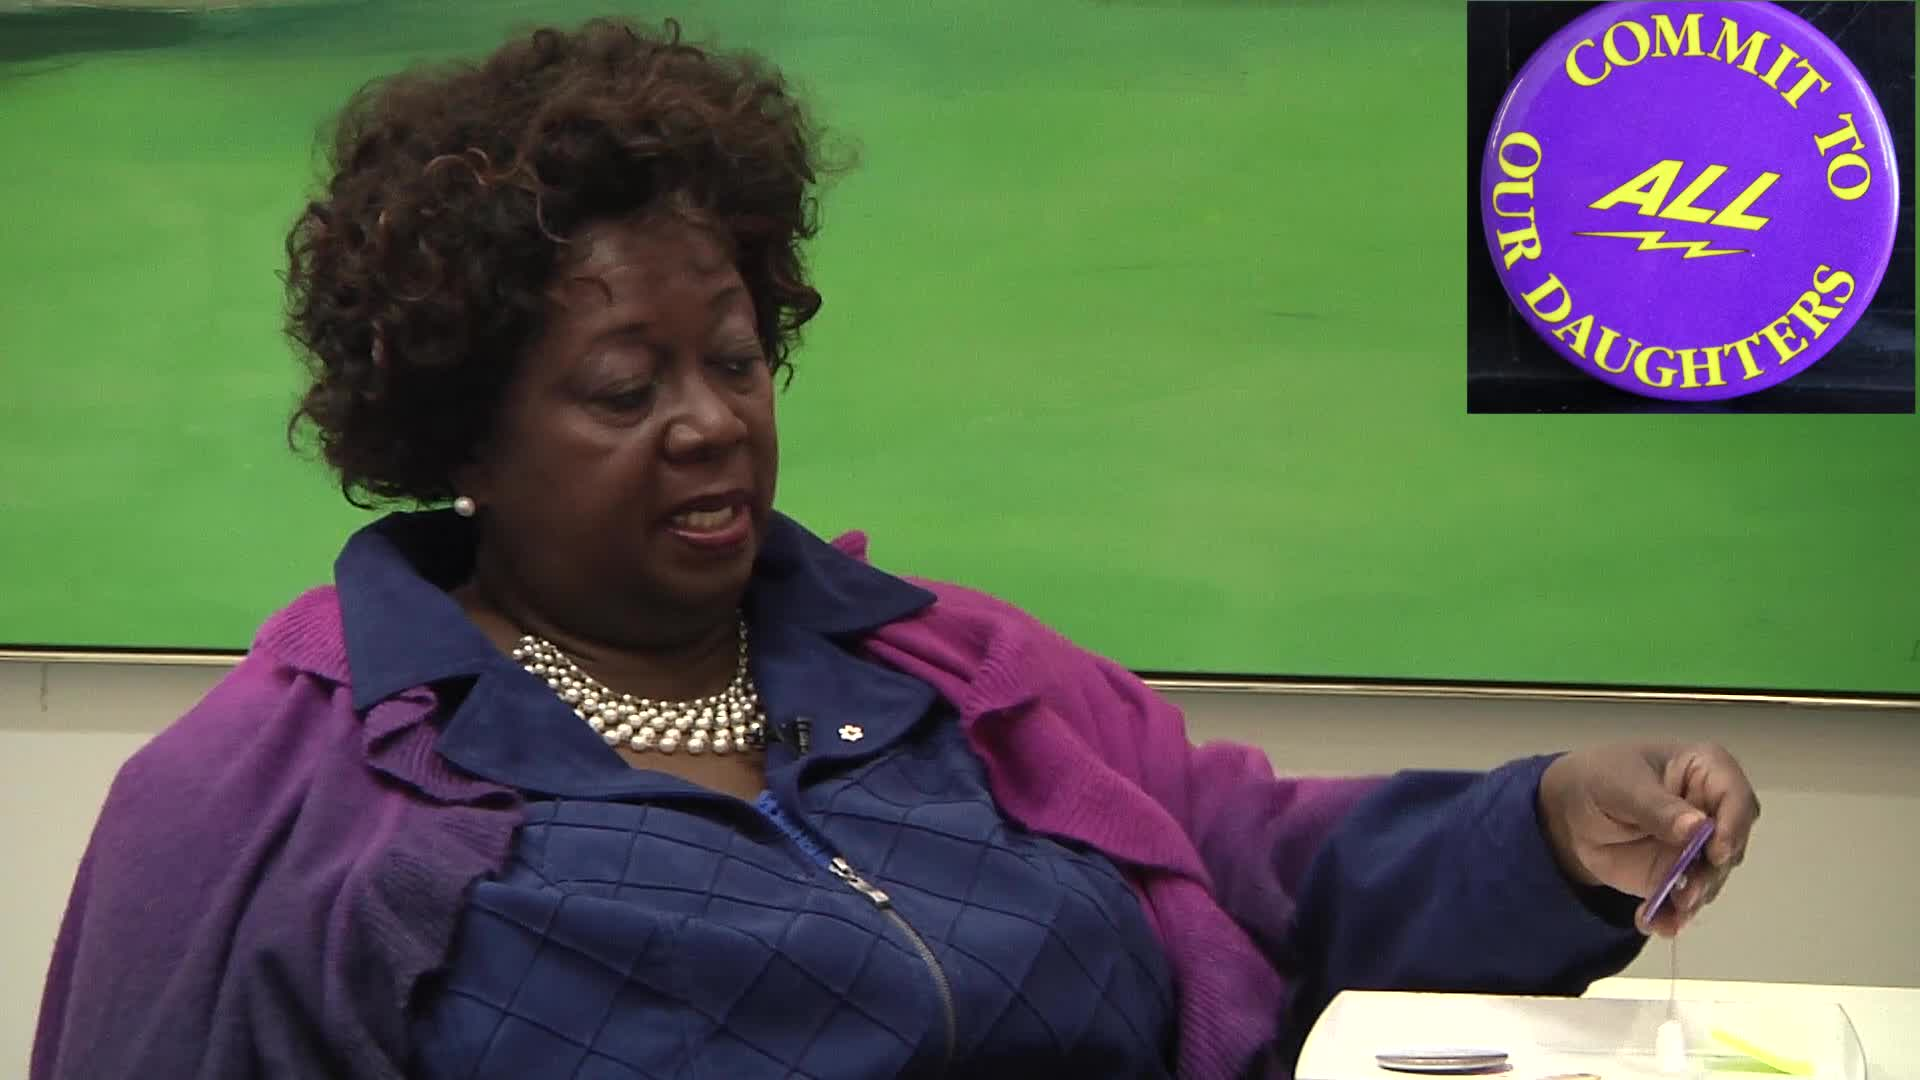 Jean Augustine interview: Commit to all our daughters